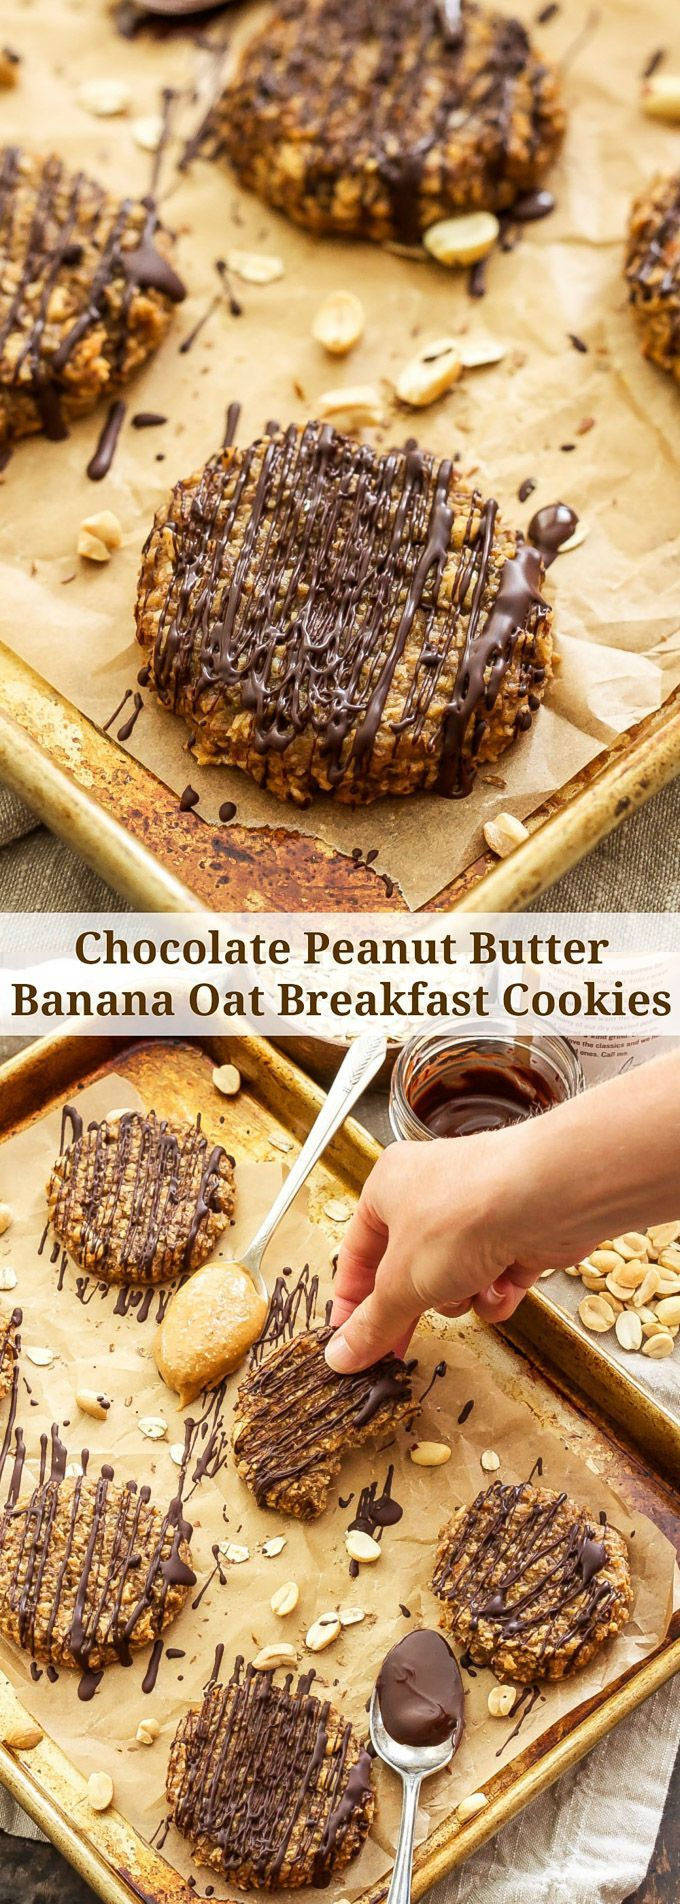 Chocolate Peanut Butter Banana Oat Breakfast Cookies | These tasty, gluten-free…